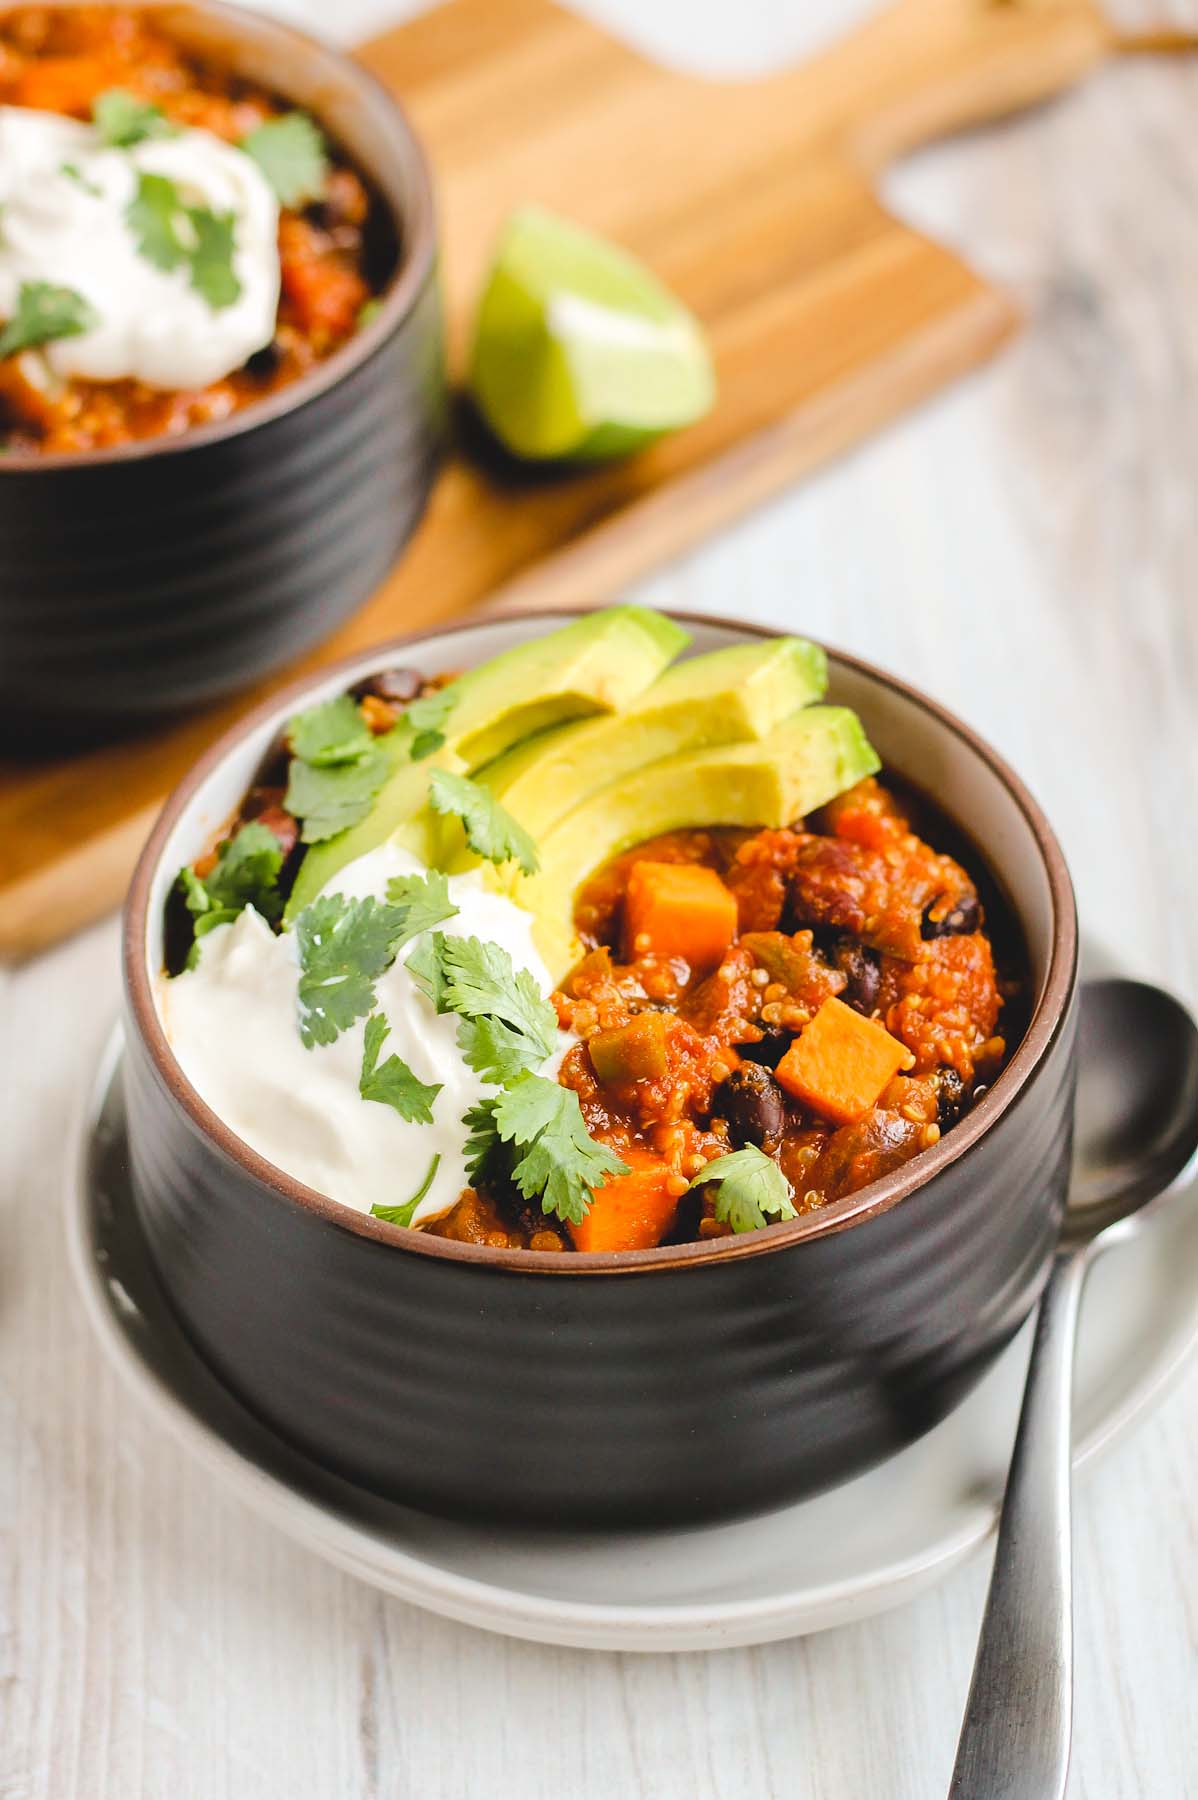 black bowl filled with sweet potato chili topped with sliced avocado, cilantro, and sour cream